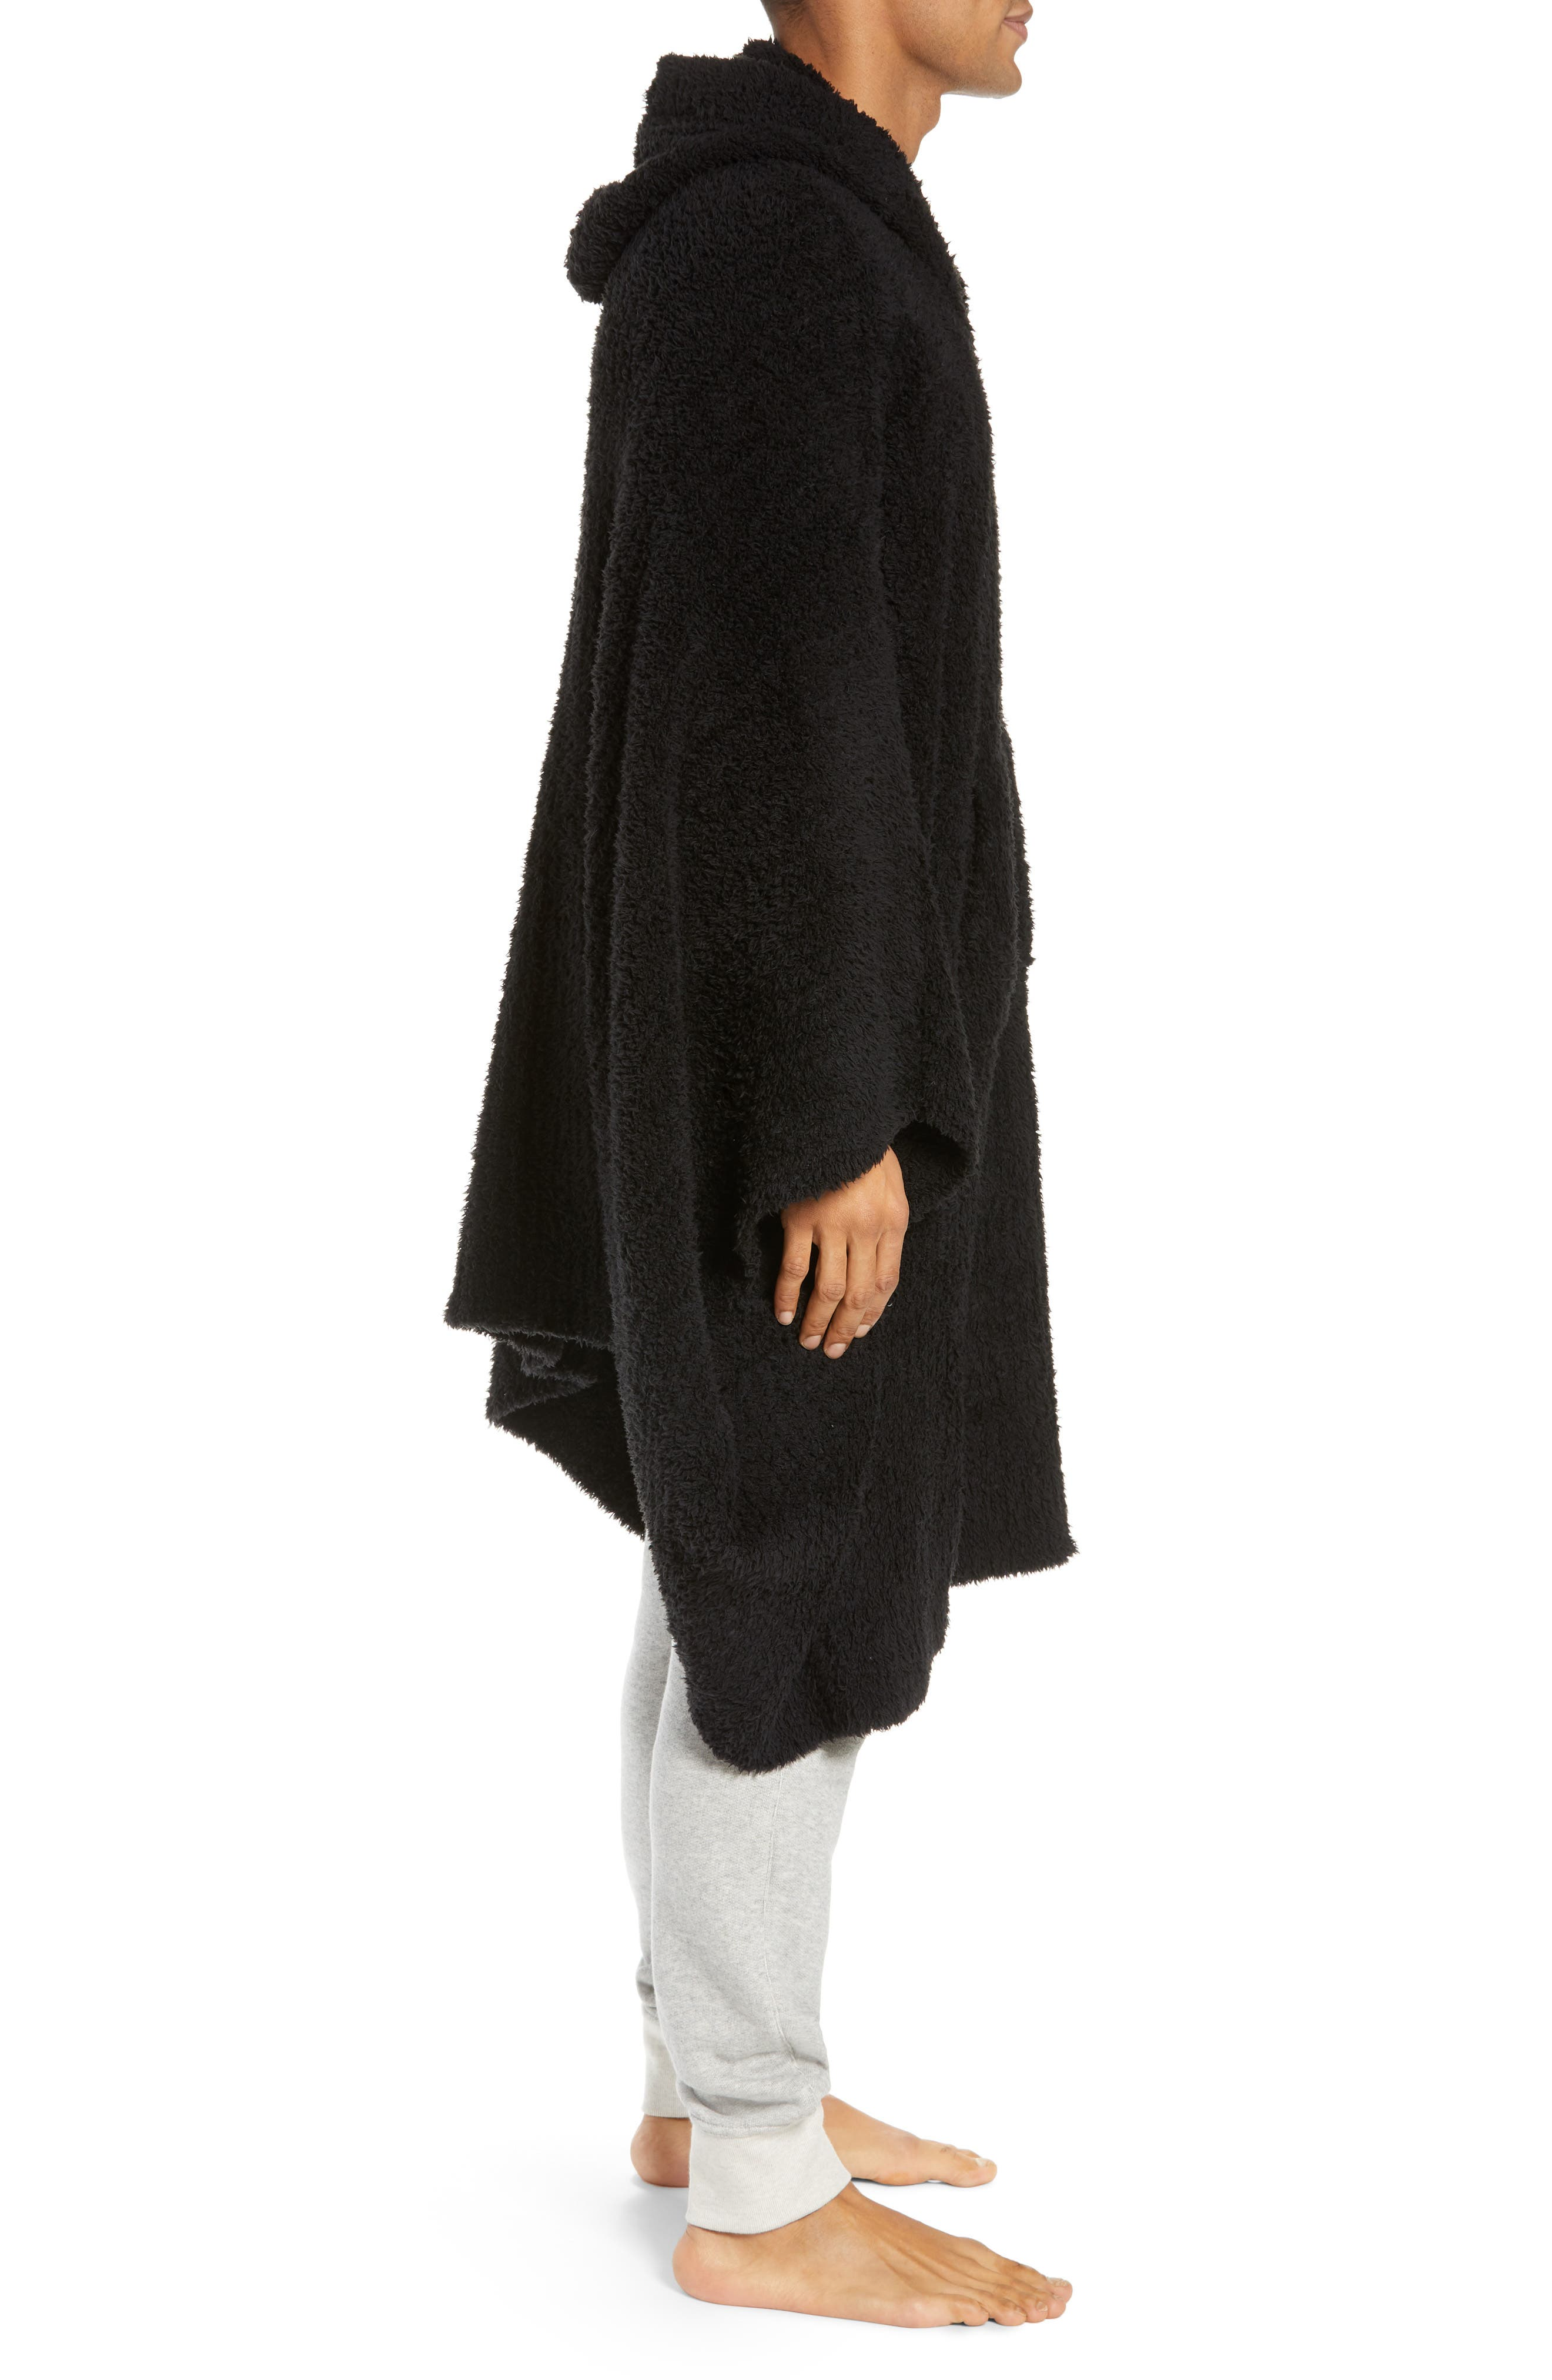 BAREFOOT DREAMS<SUP>®</SUP>,                             Barefoot Dreams Cozy Chic Poncho Robe,                             Alternate thumbnail 3, color,                             001